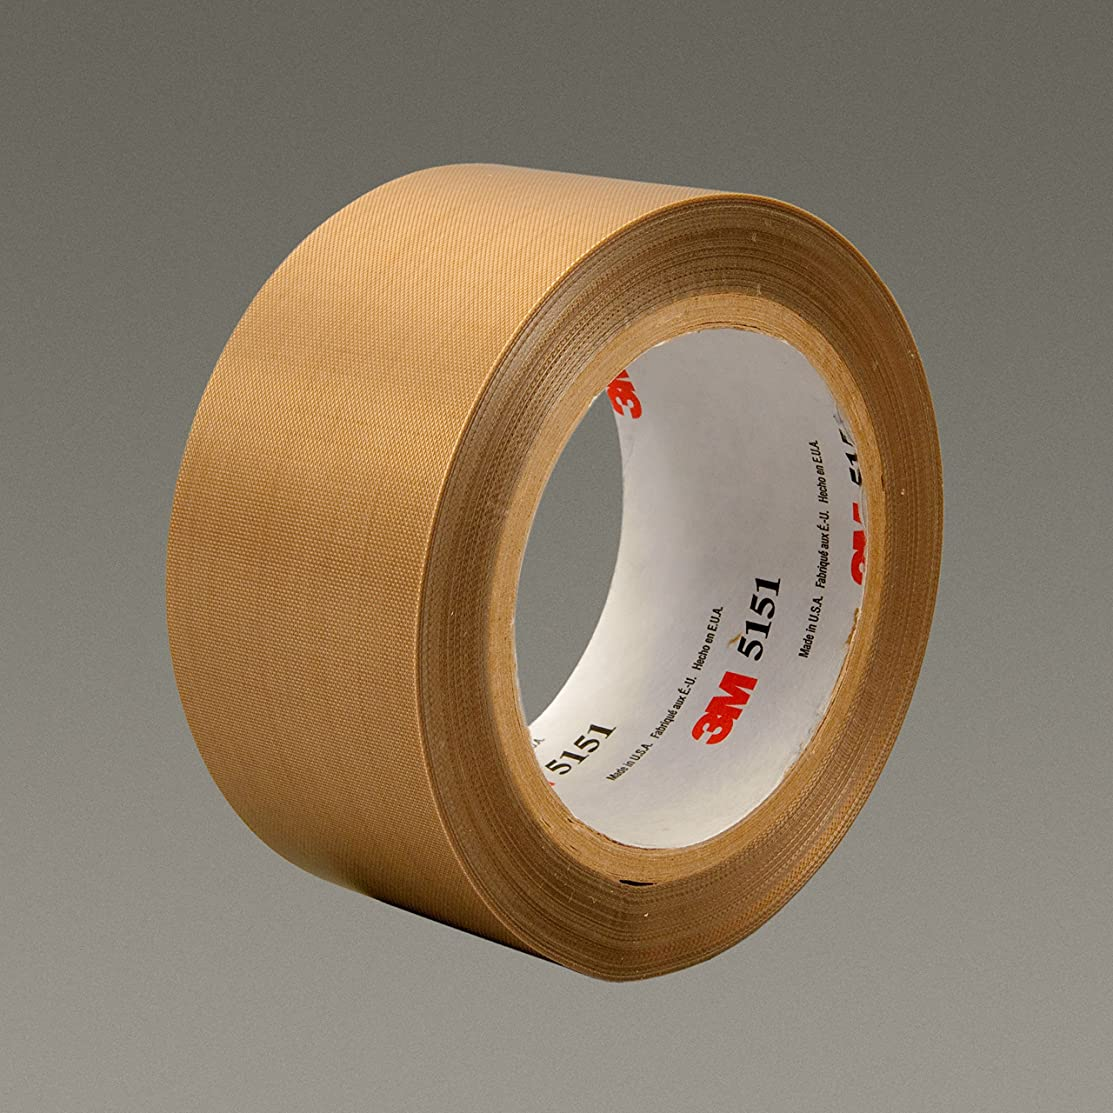 3M 45630 Glass Cloth Tape, 3/4 in x 36 yd 3.5 mil, 5151, Glass Cloth Impregnated W/PTFE, Light Brown